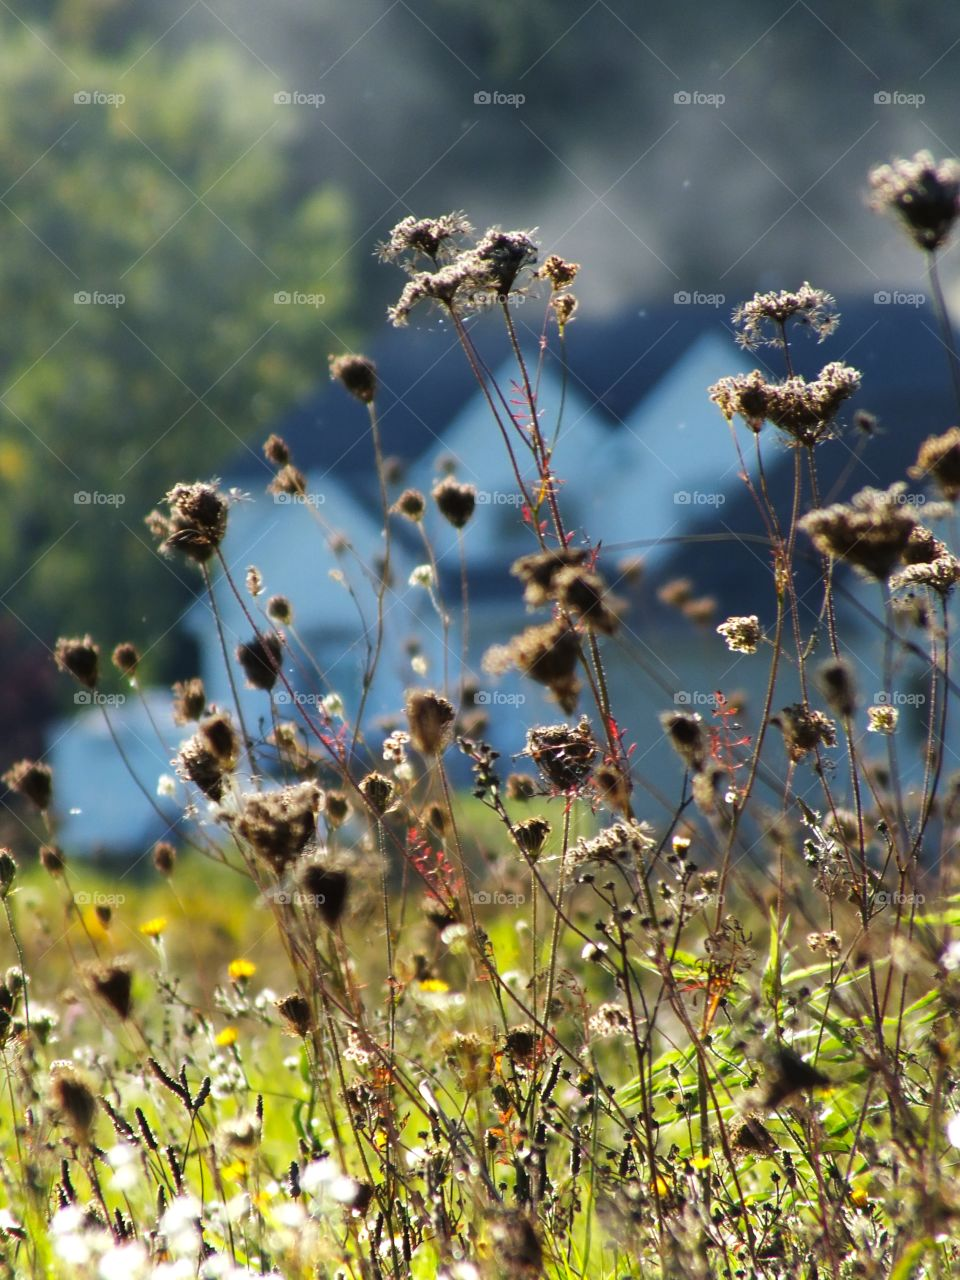 Weeds in the wind in the sun